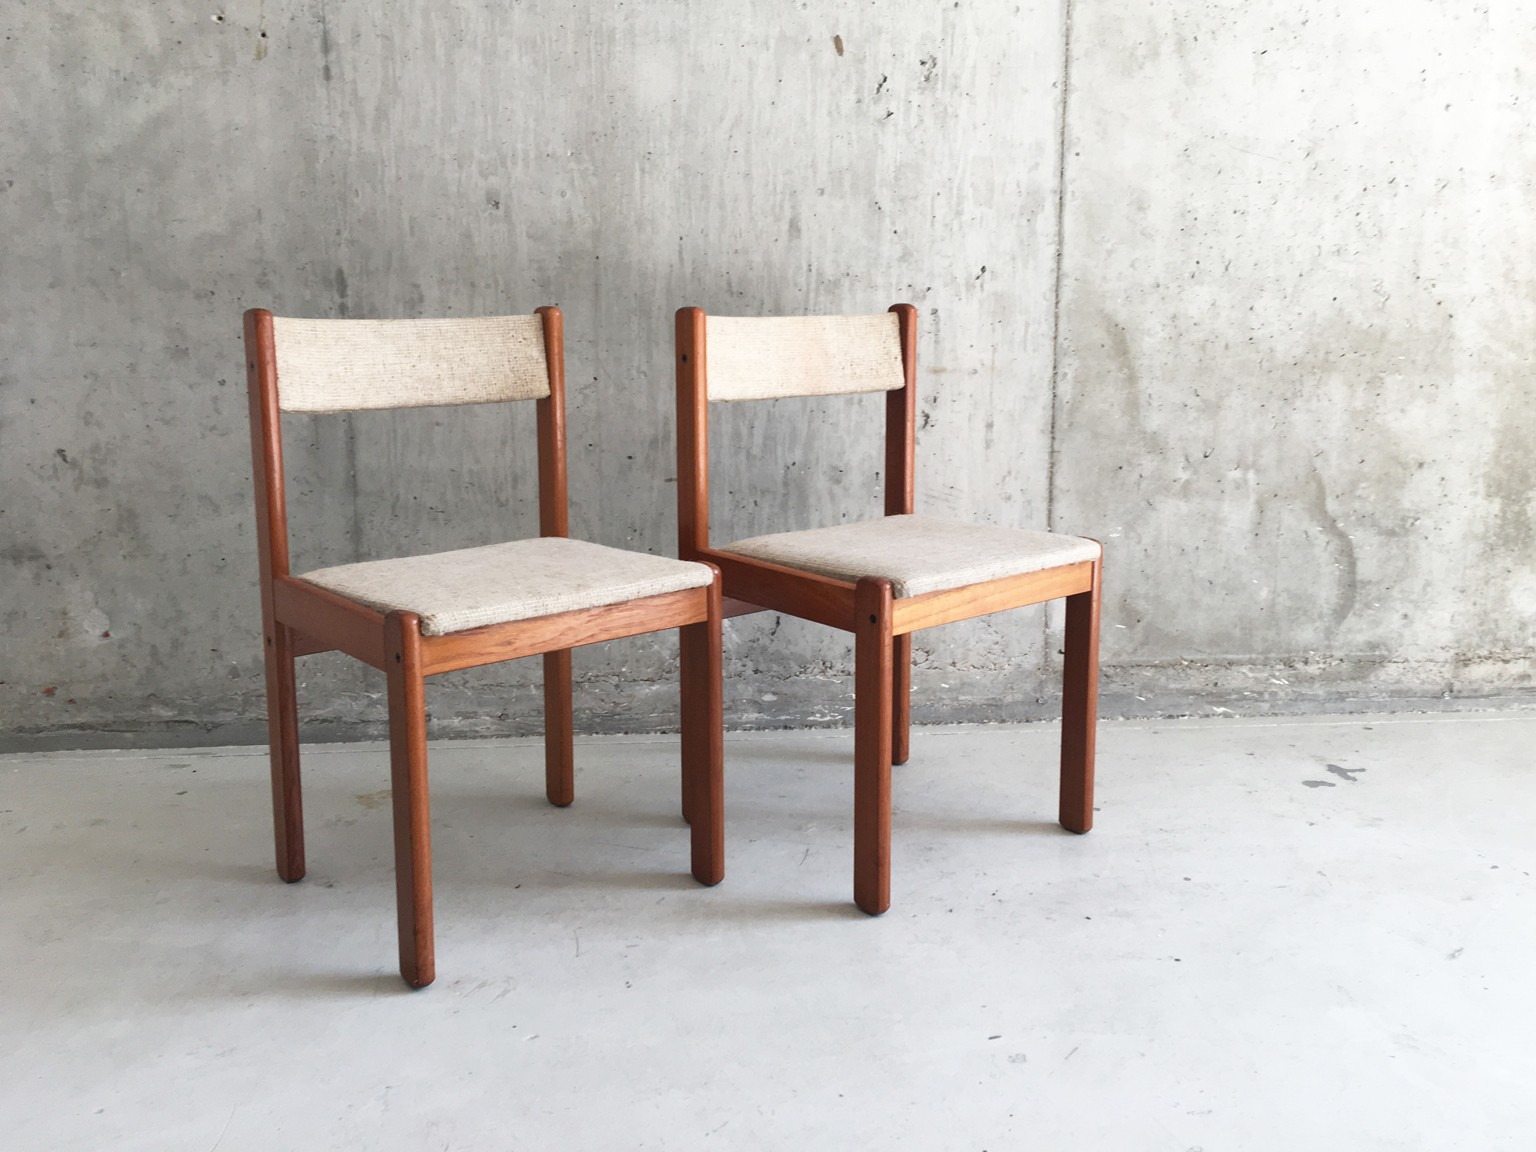 Vintage danish teak dining chairs - 1970s - Design Market